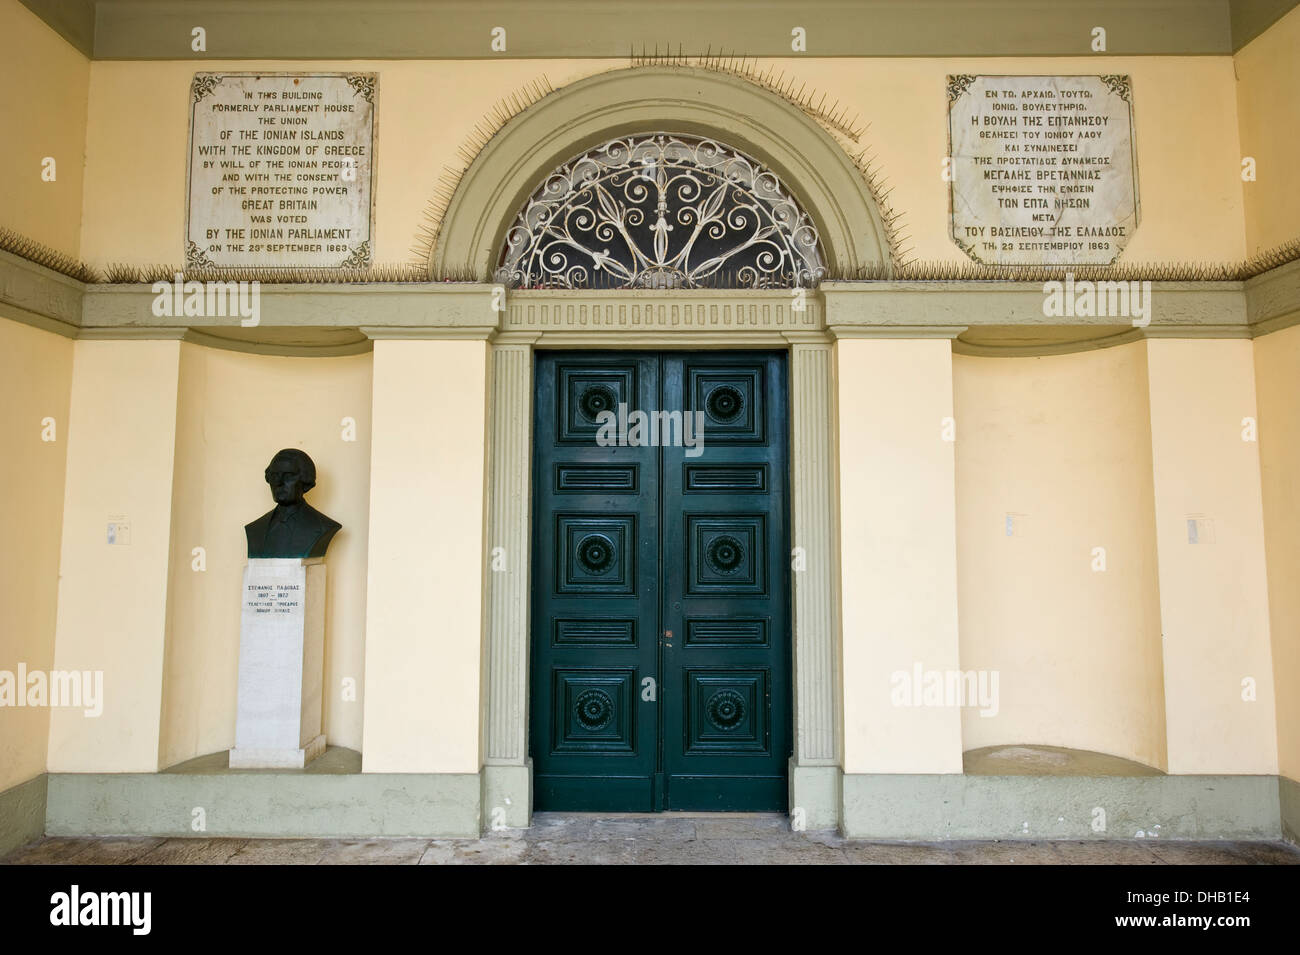 The former Parliament House in Corfu, Greece, and the bust of Stephanou Padoba (1807-1872).Stock Photo